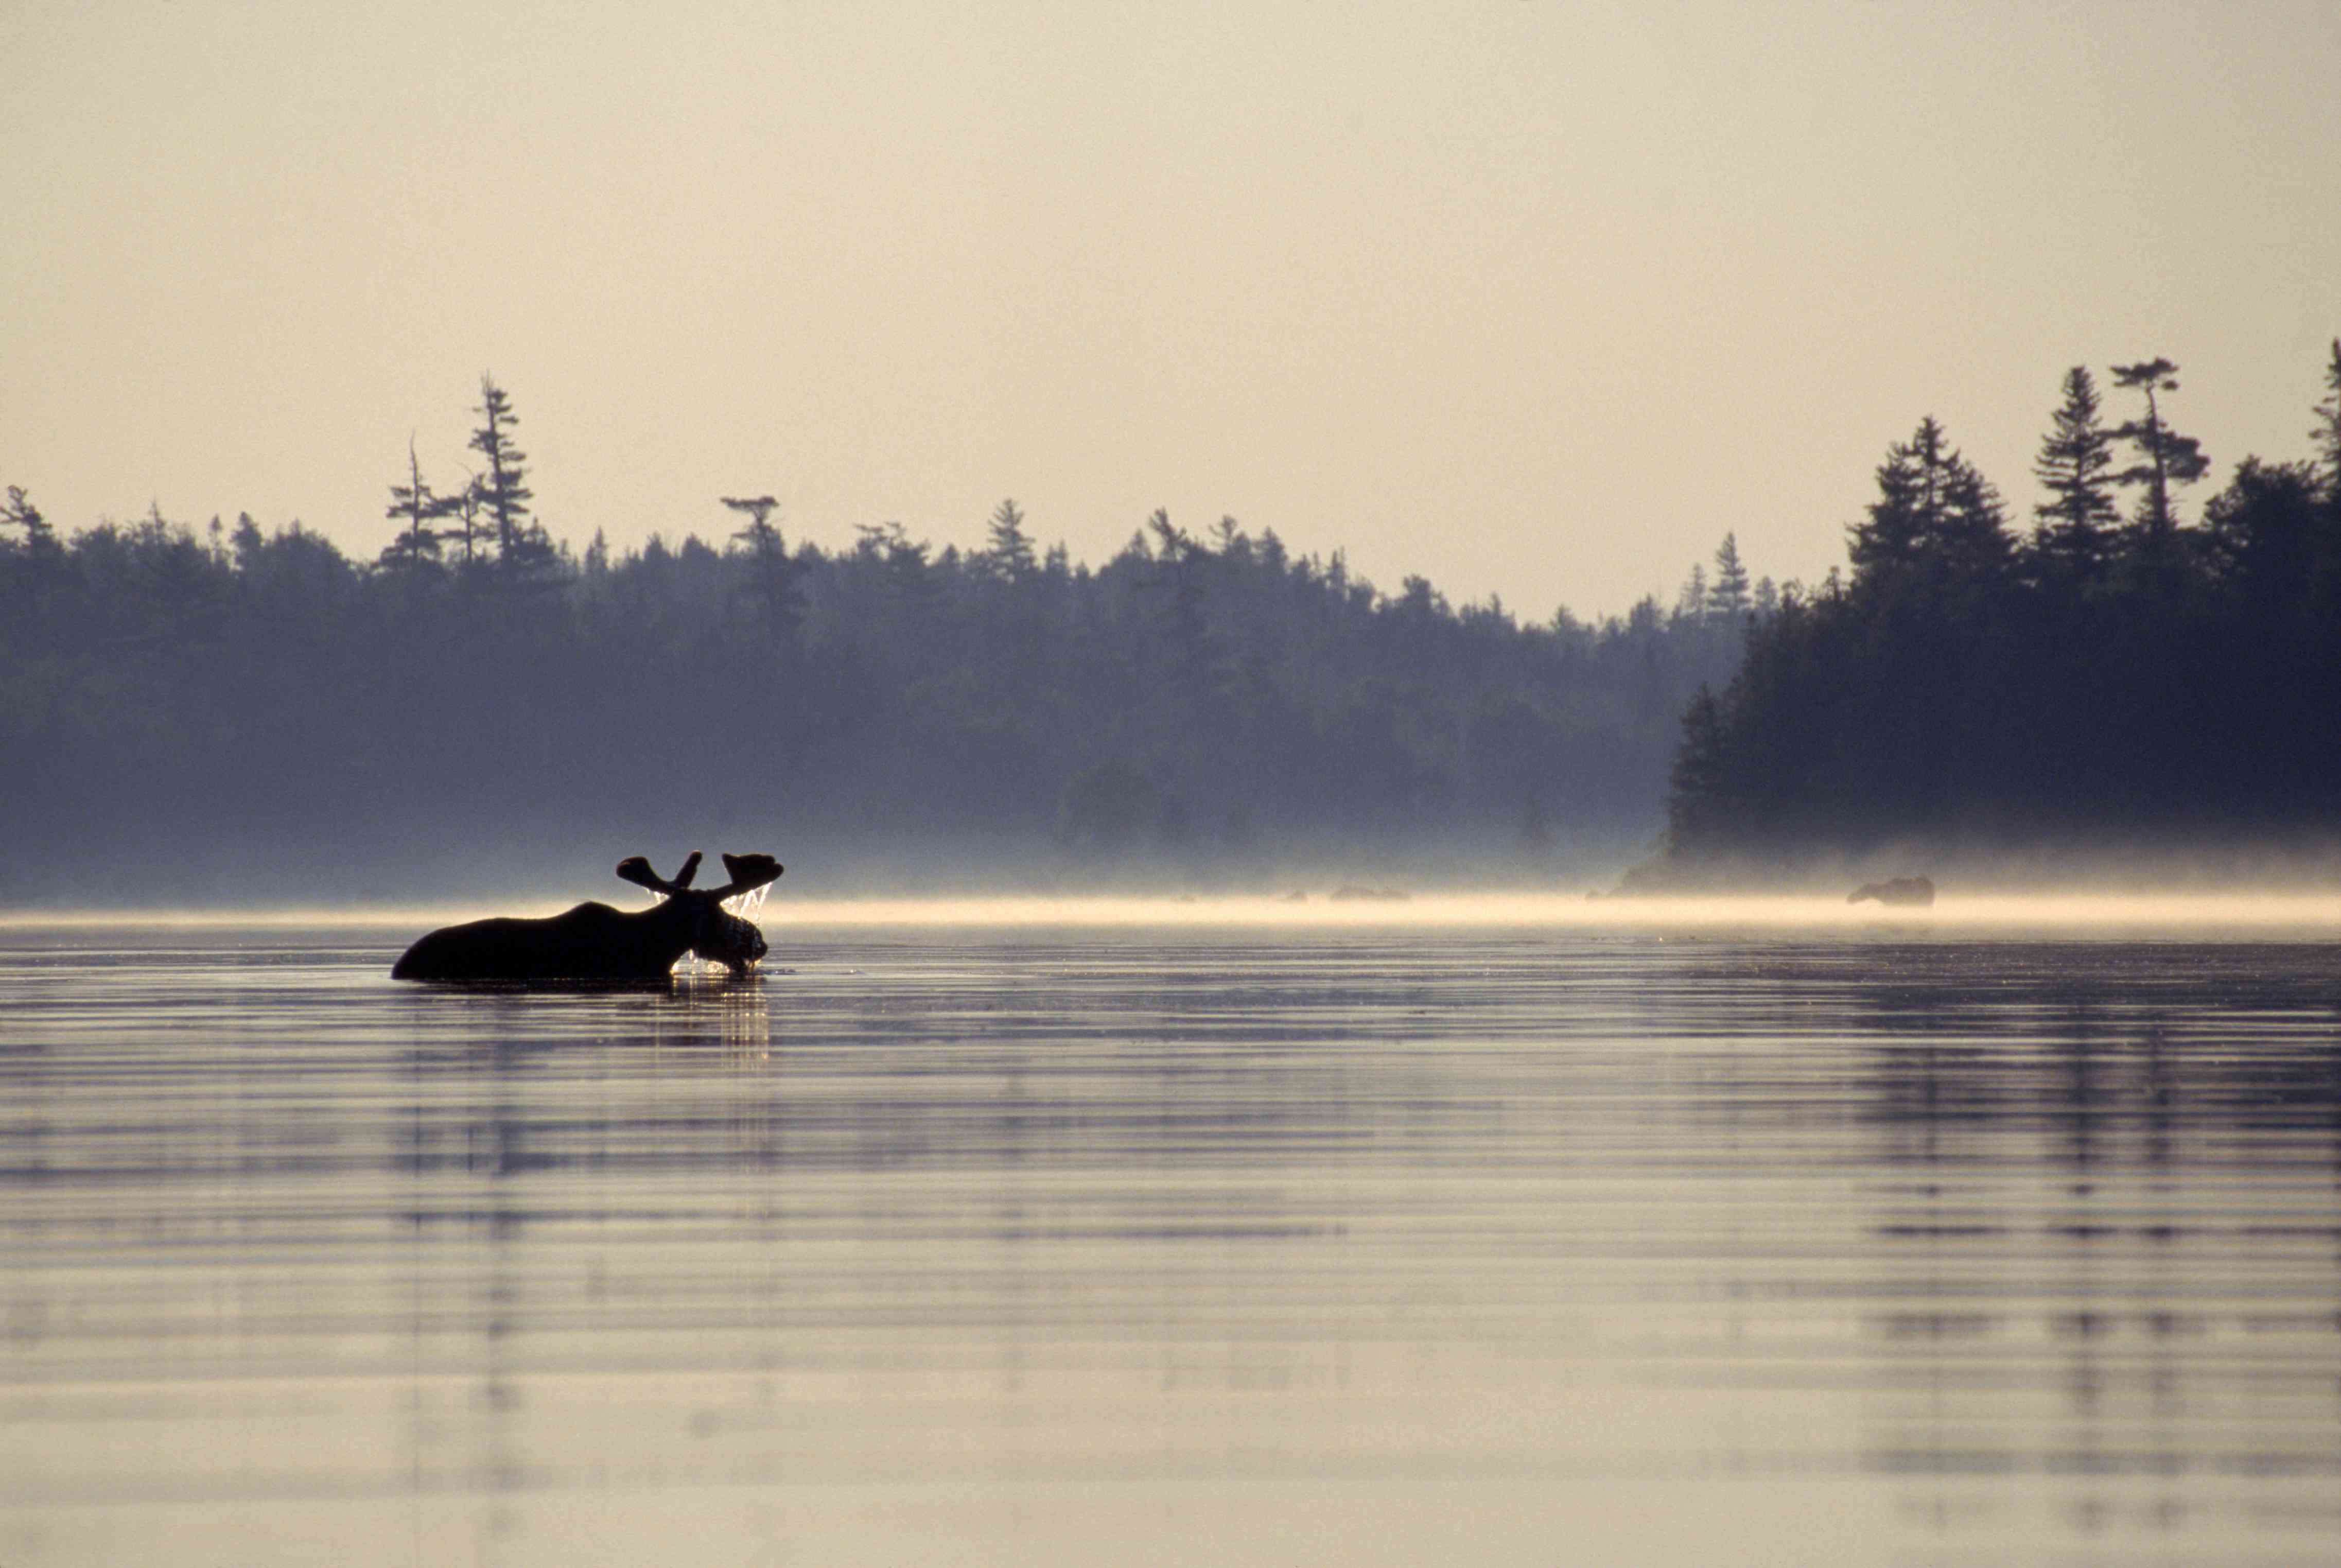 A moose cooling off half immersed in the river, Maine, USA.